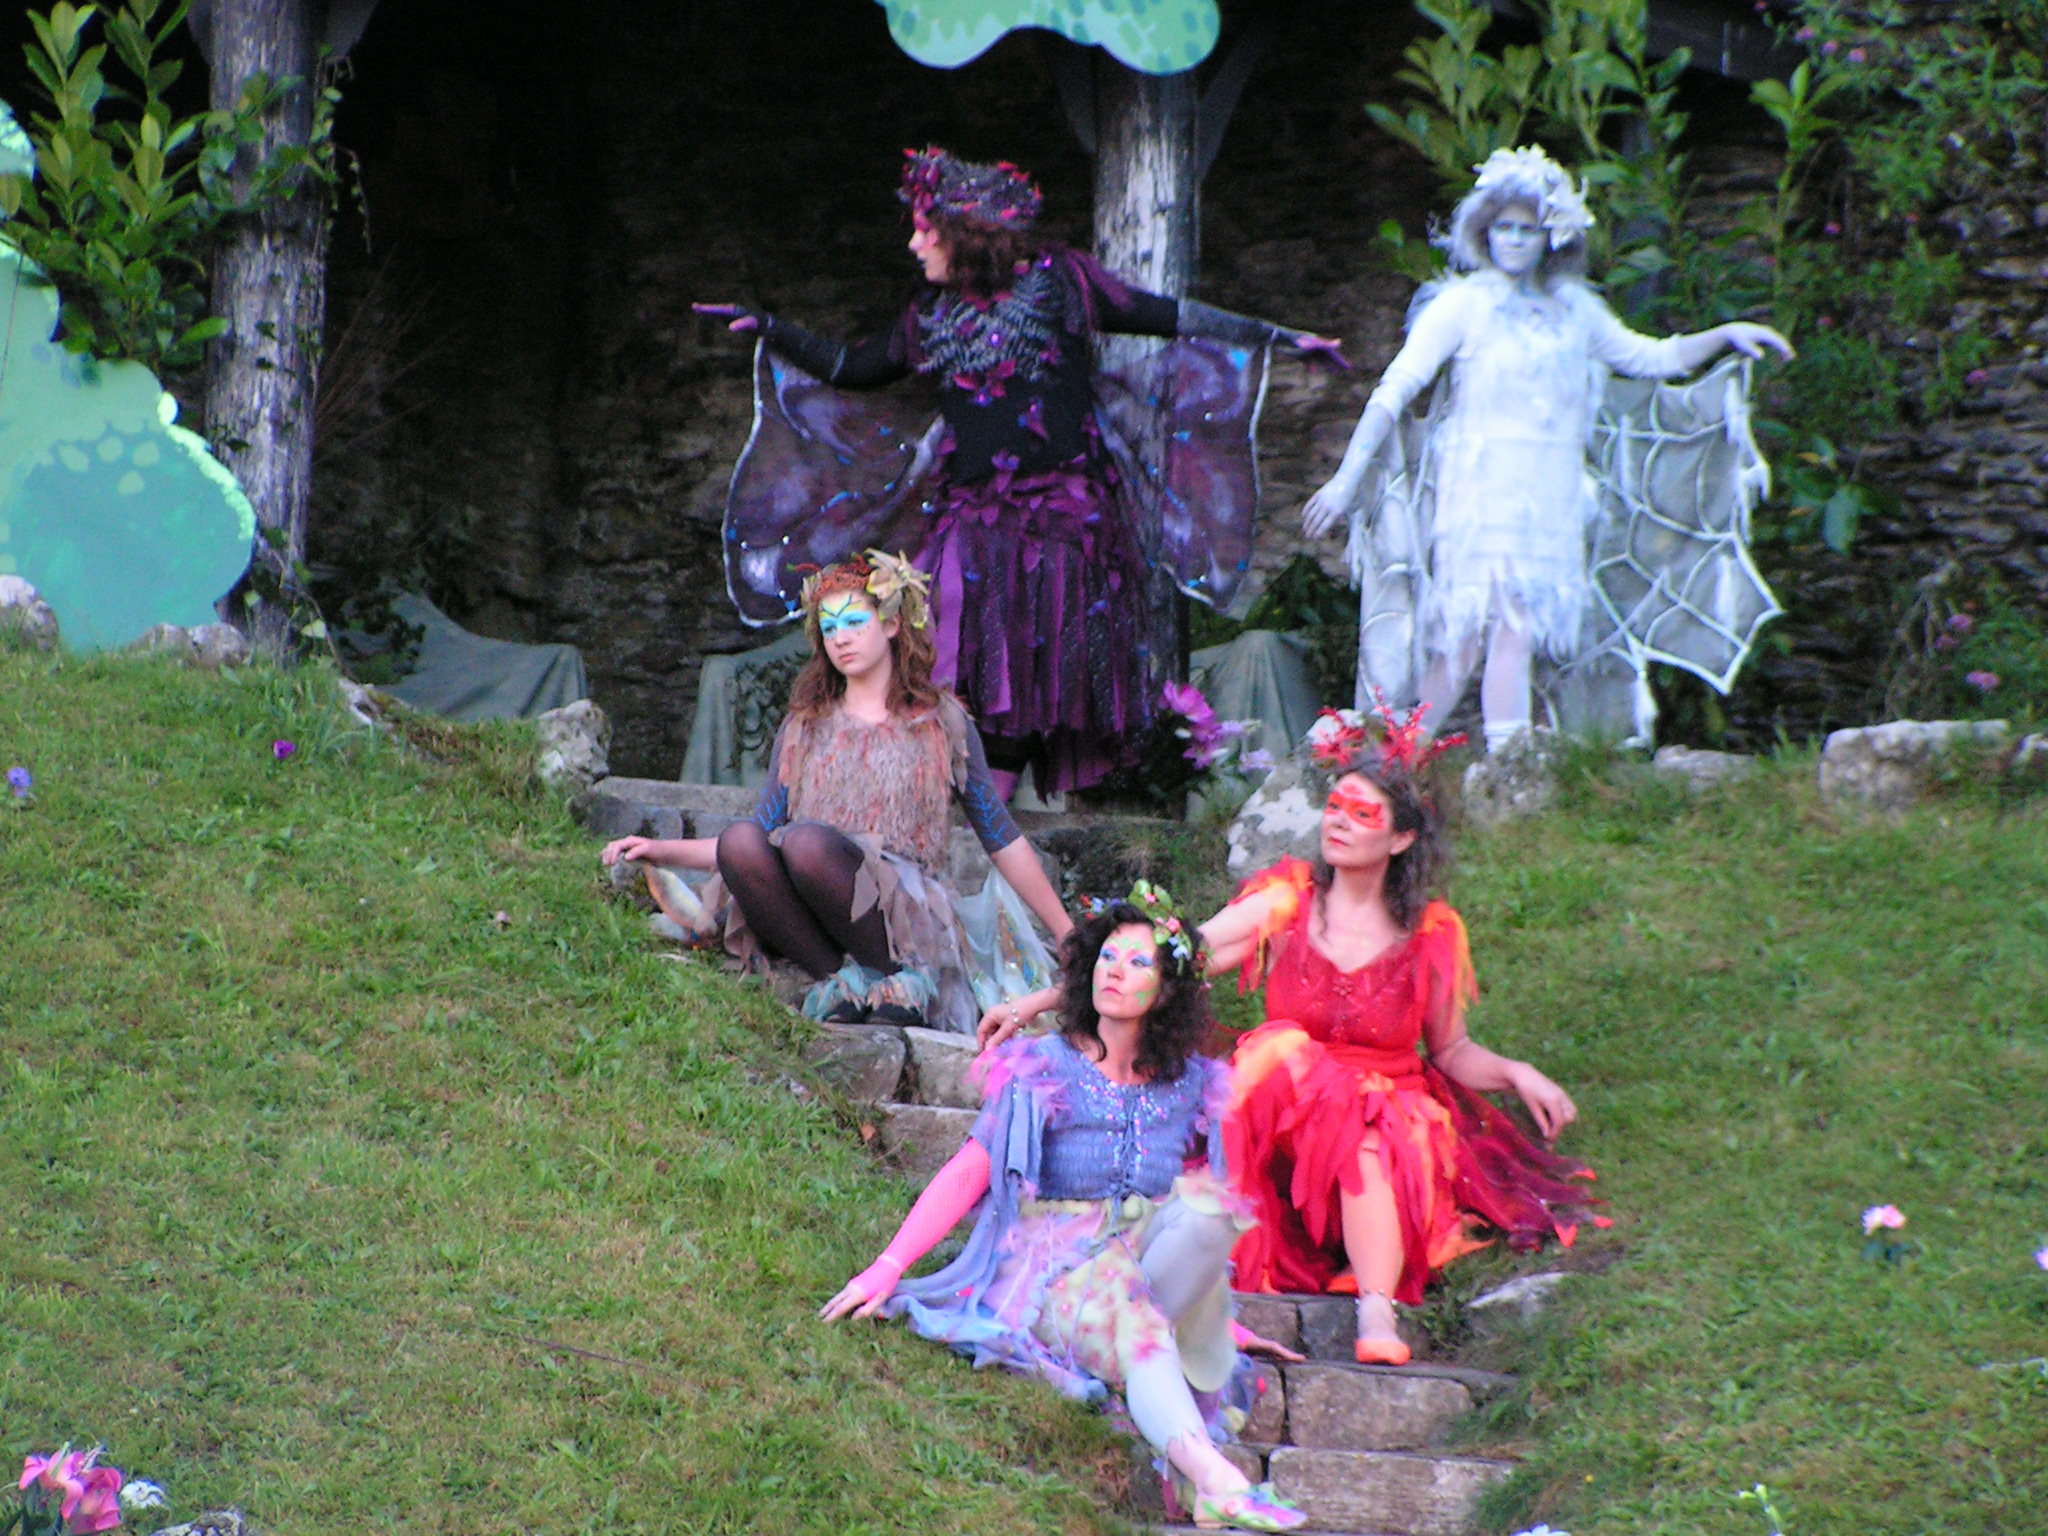 Some of the Faeries